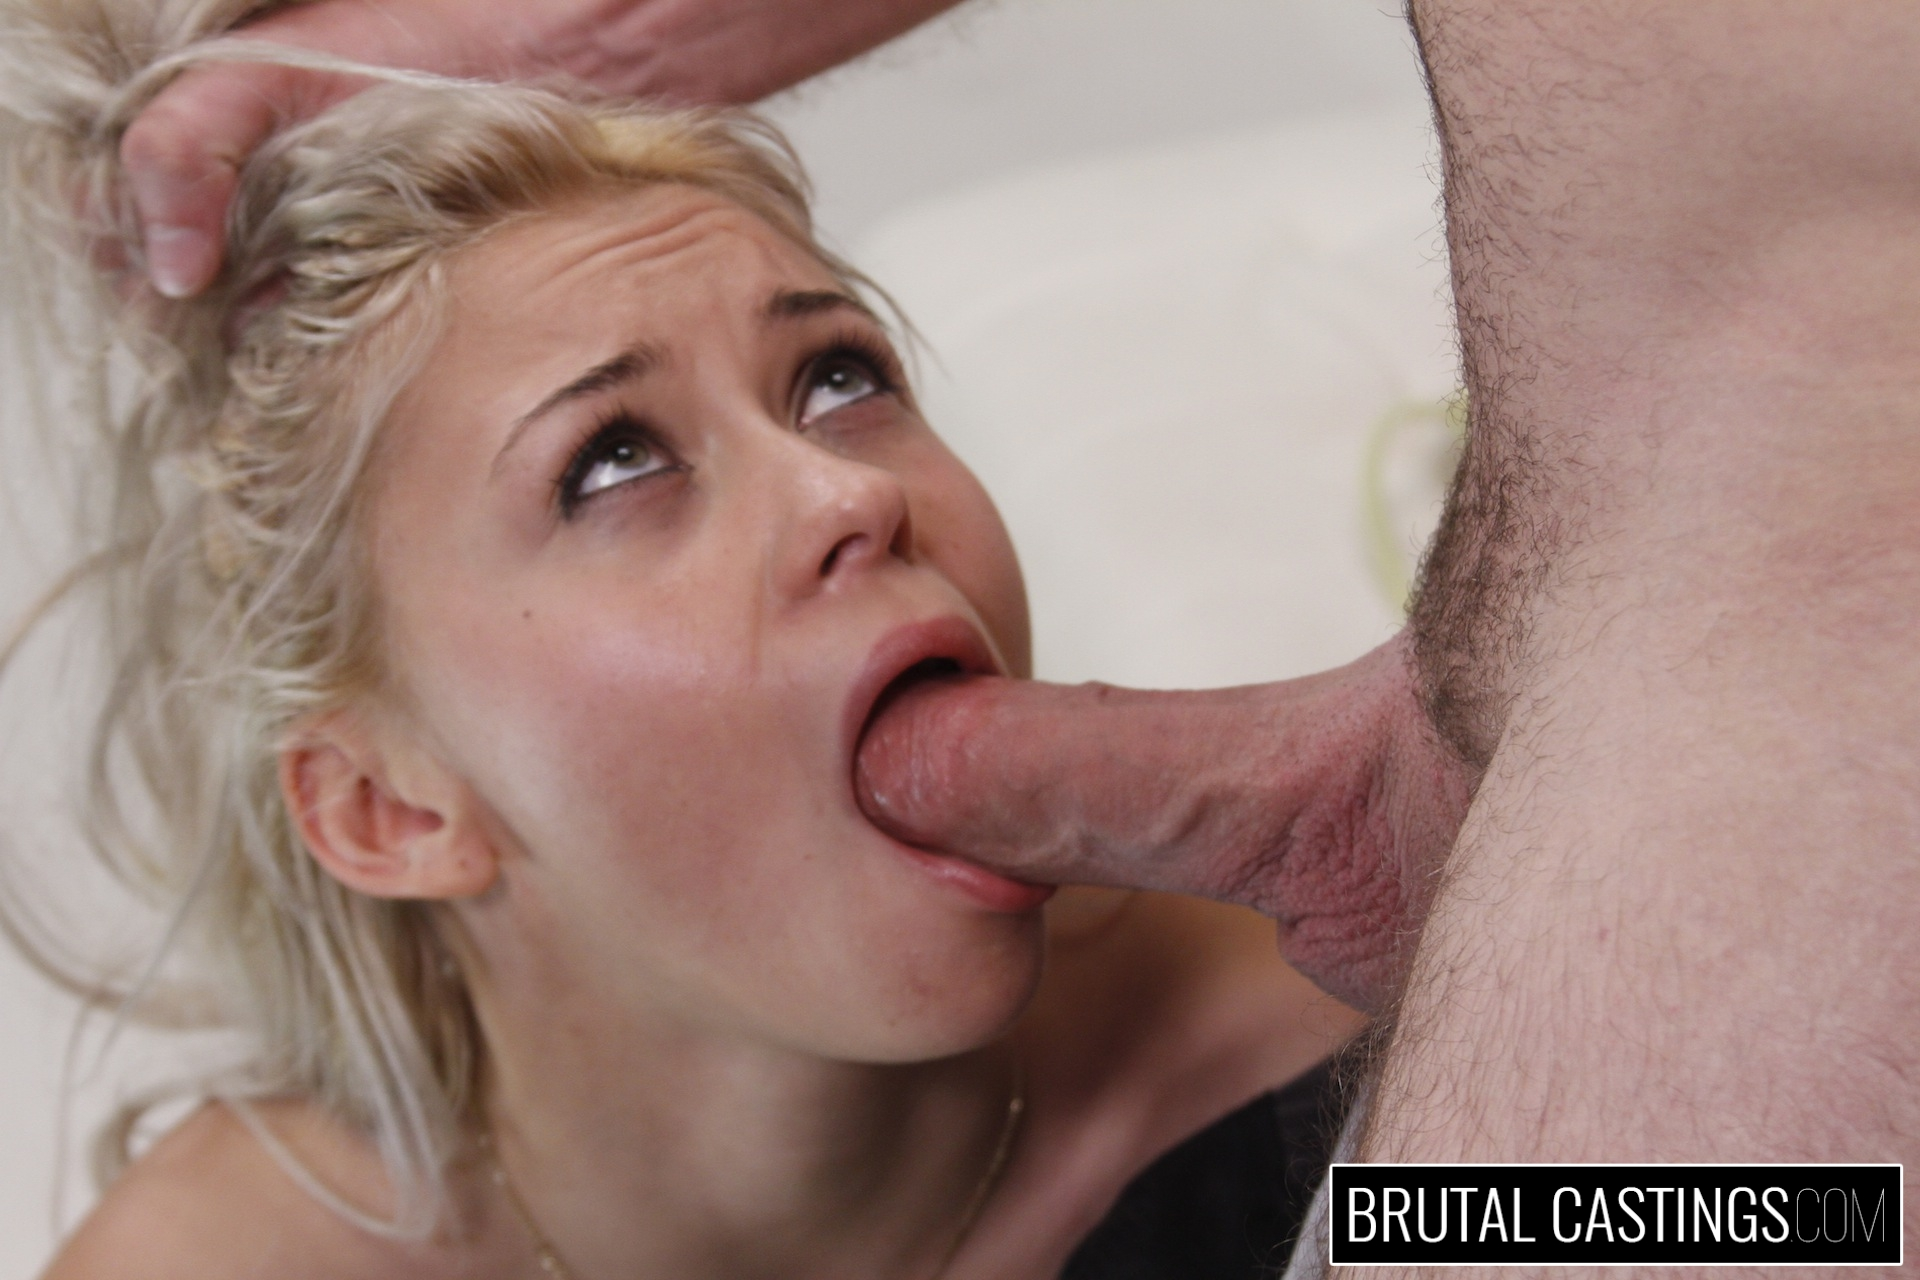 Brutal Castings Review  Mr Pinks Porn Reviews-3622